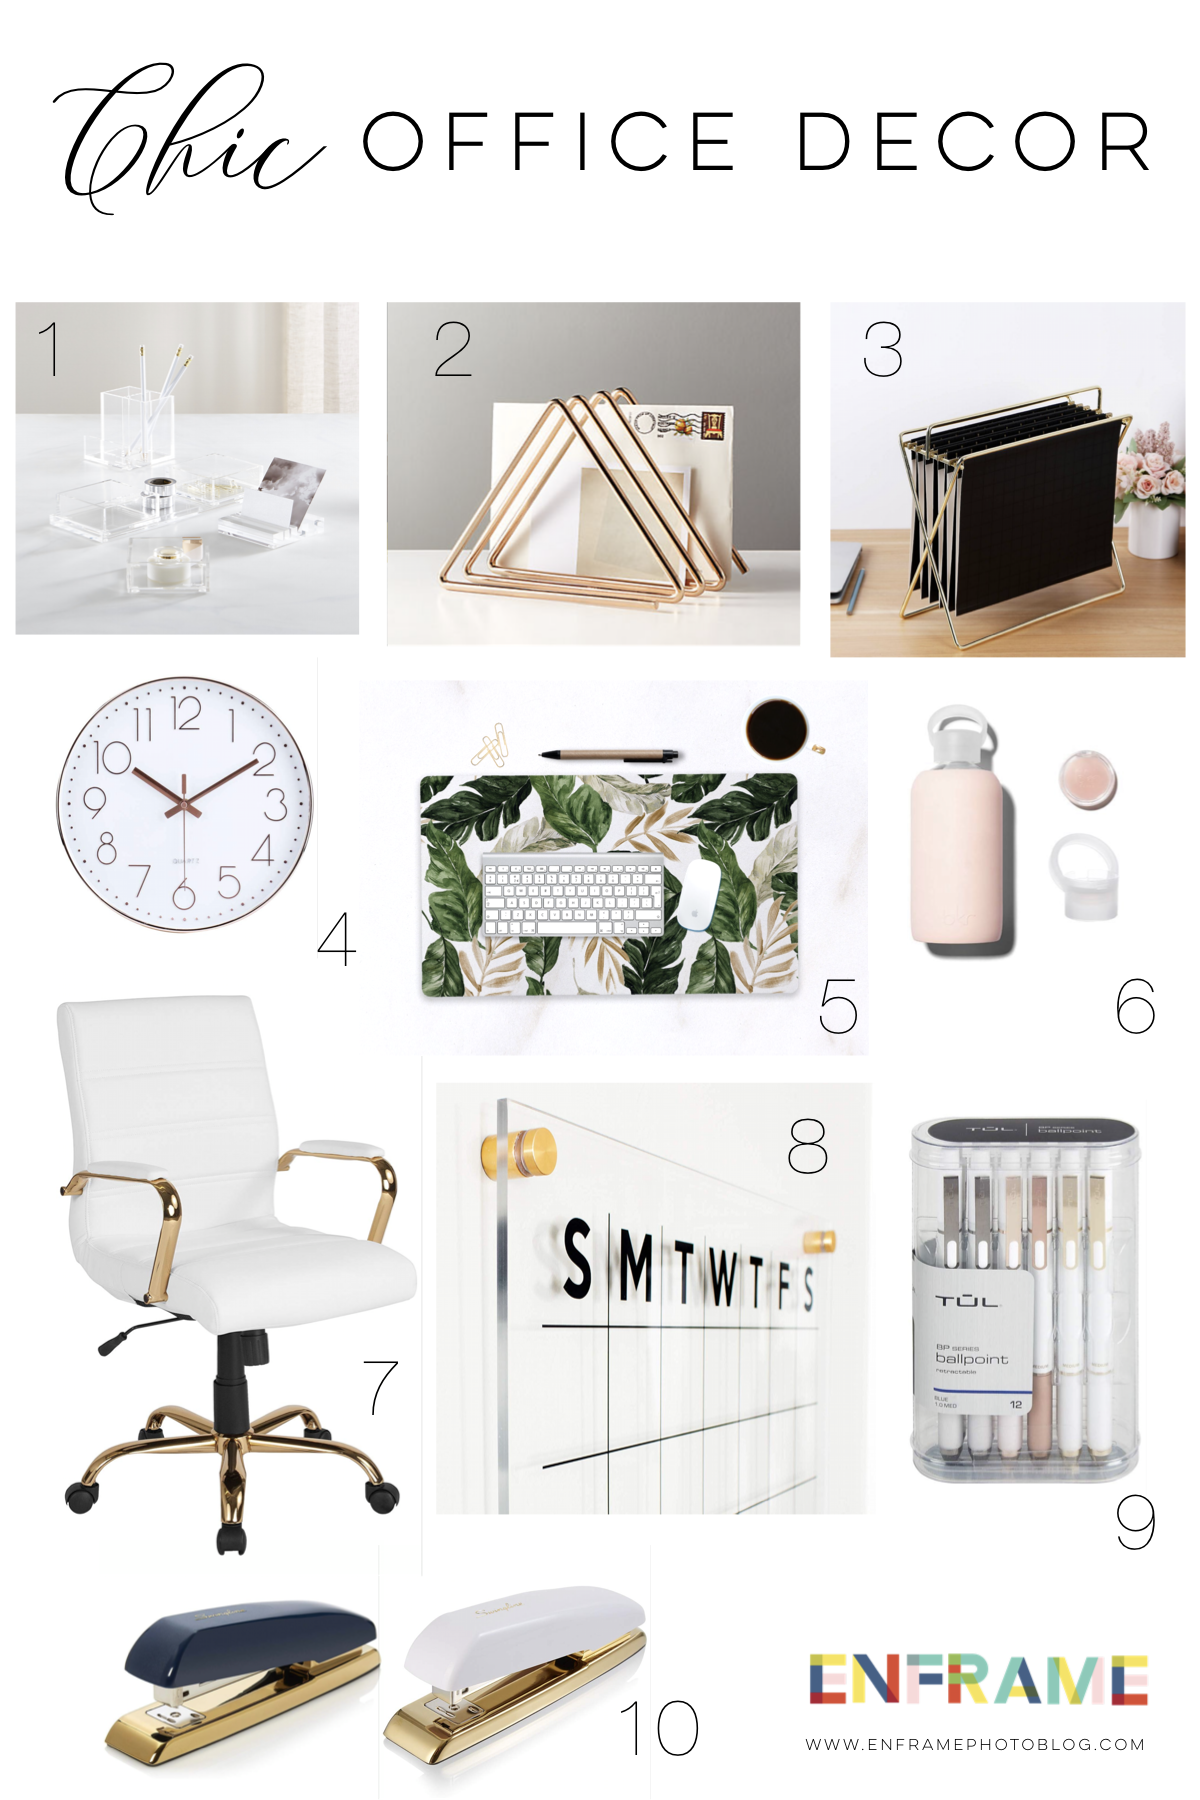 Chic Office Decor and Accessories